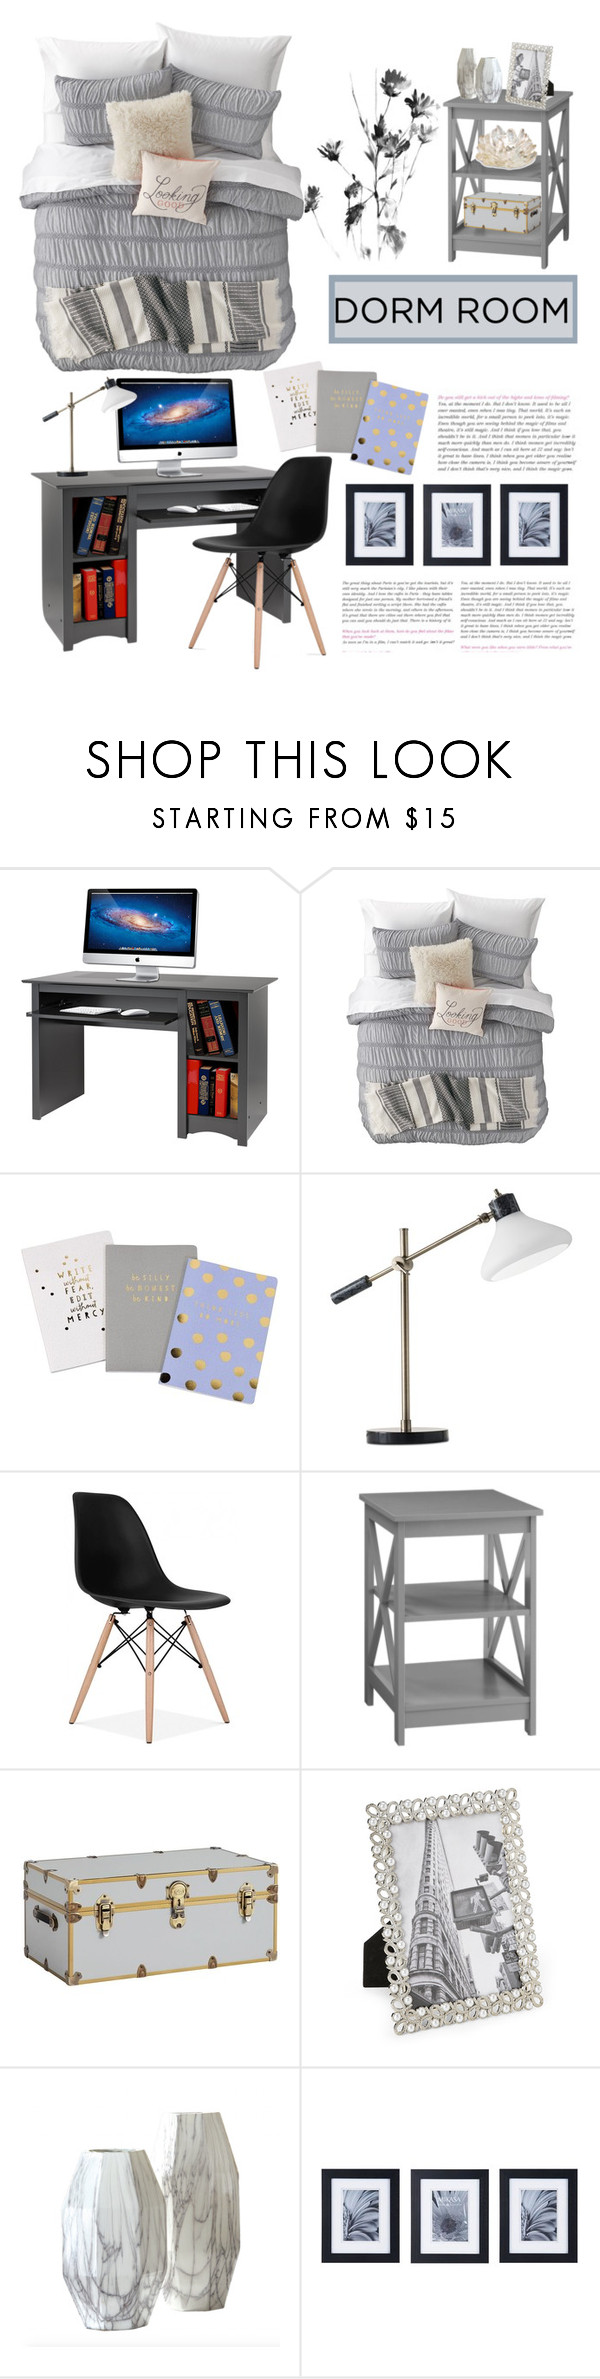 """""""Dorm Room"""" by designsbynat ❤ liked on Polyvore featuring interior, interiors, interior design, home, home decor, interior decorating, Prepac, Nordstrom Rack, Adesso and PBteen"""